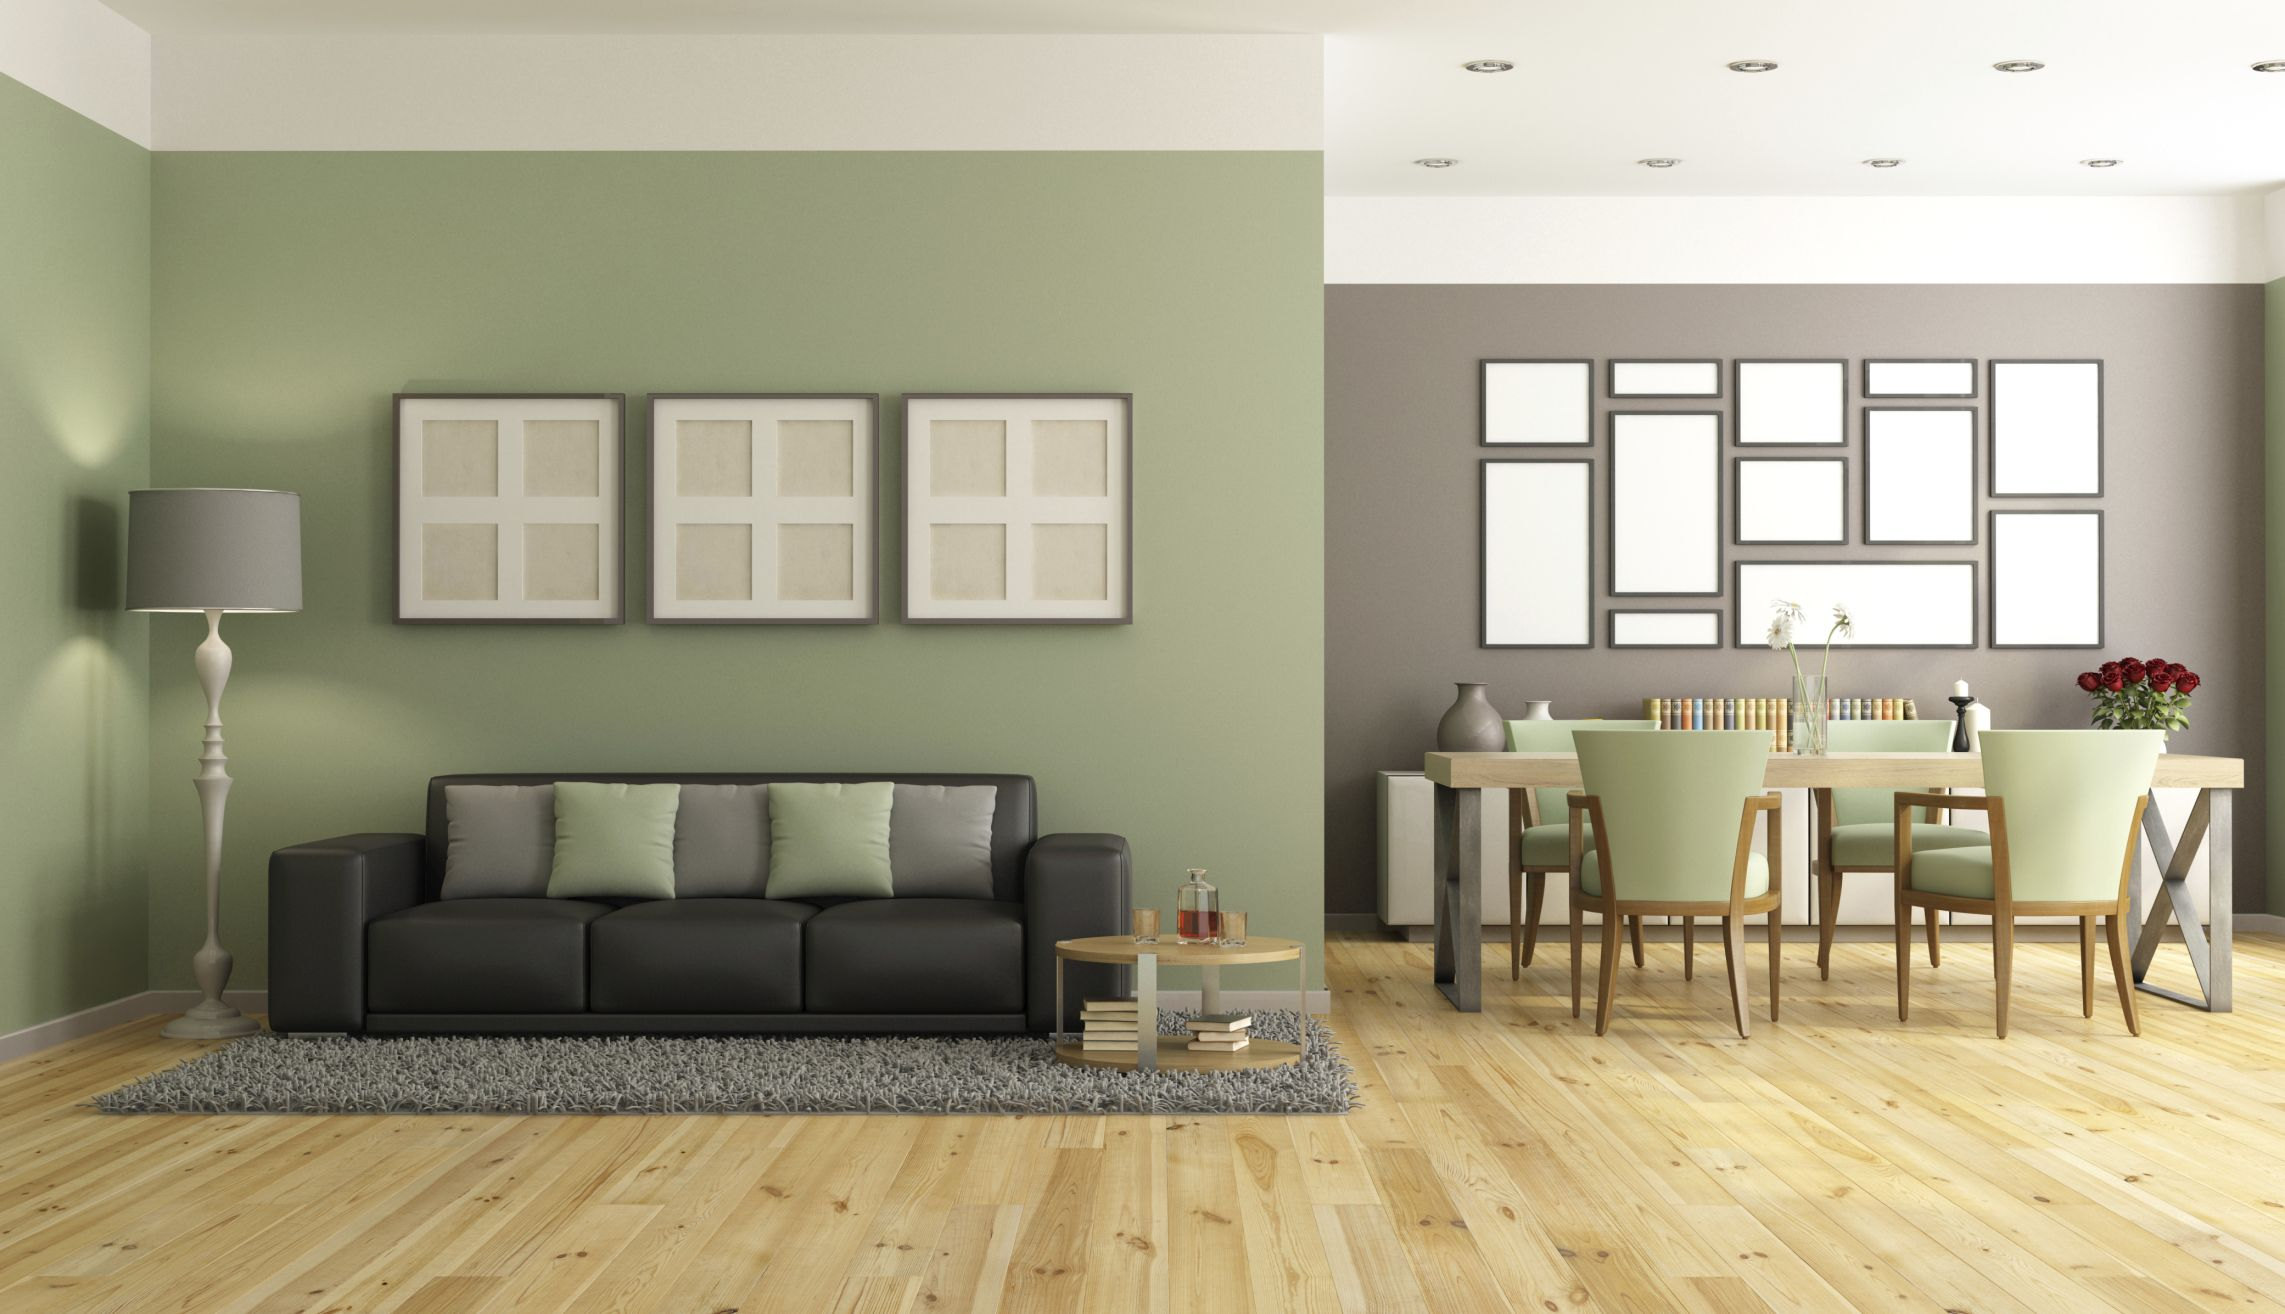 Green And Brown Room Walls Brown Living Room Living Room Green Brown Living Room Decor #tile #designs #for #living #room #walls